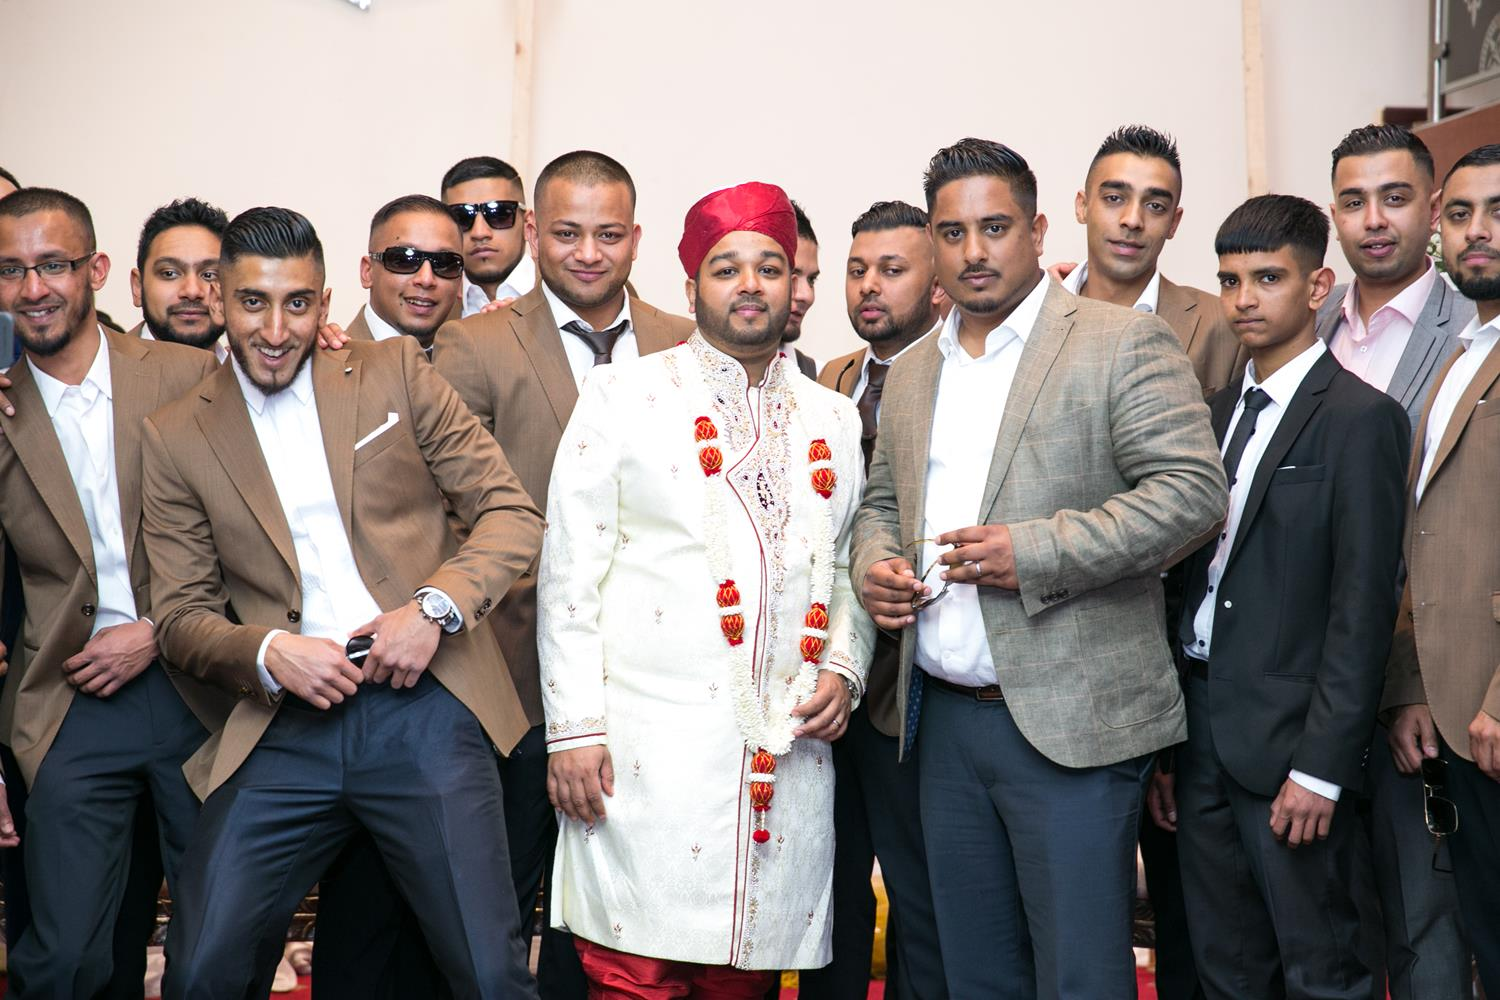 Wedding Photography of Groom and friends at Bengali Wedding by MAKSAM London Photographer